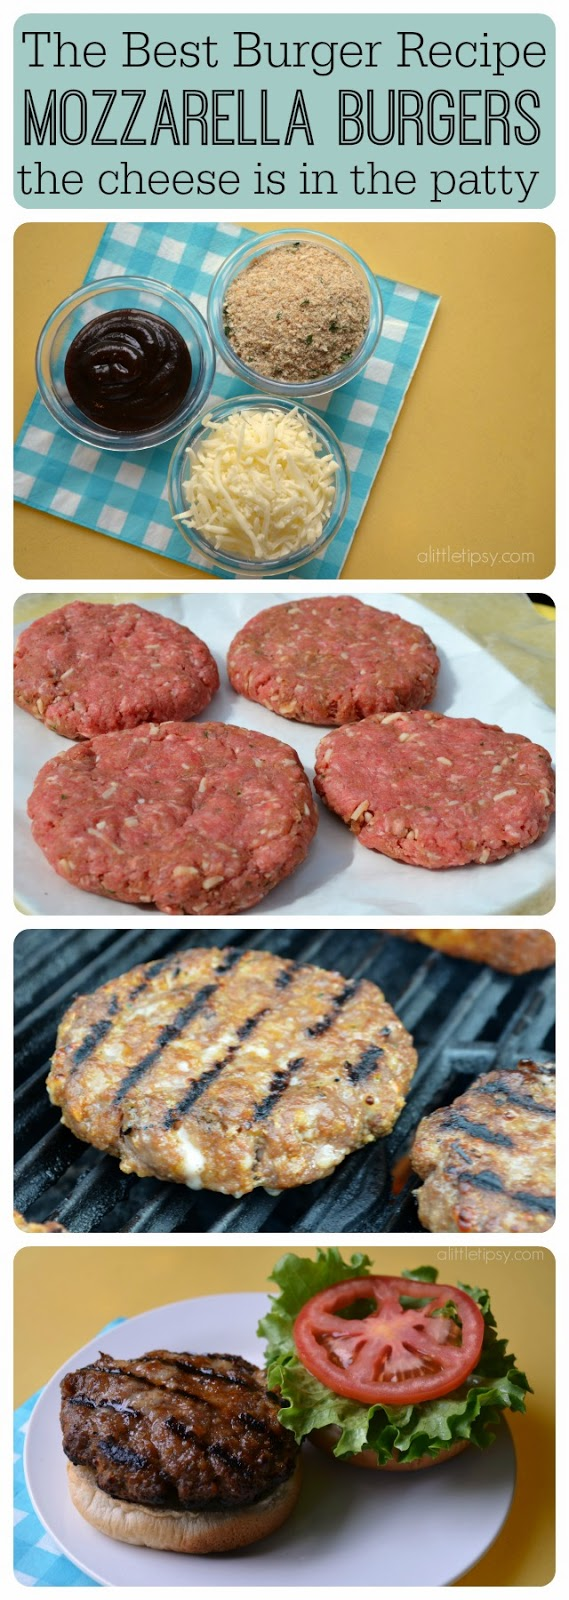 Best Burger Recipe collage showing ingredients and steps to make the delicious burger recipe